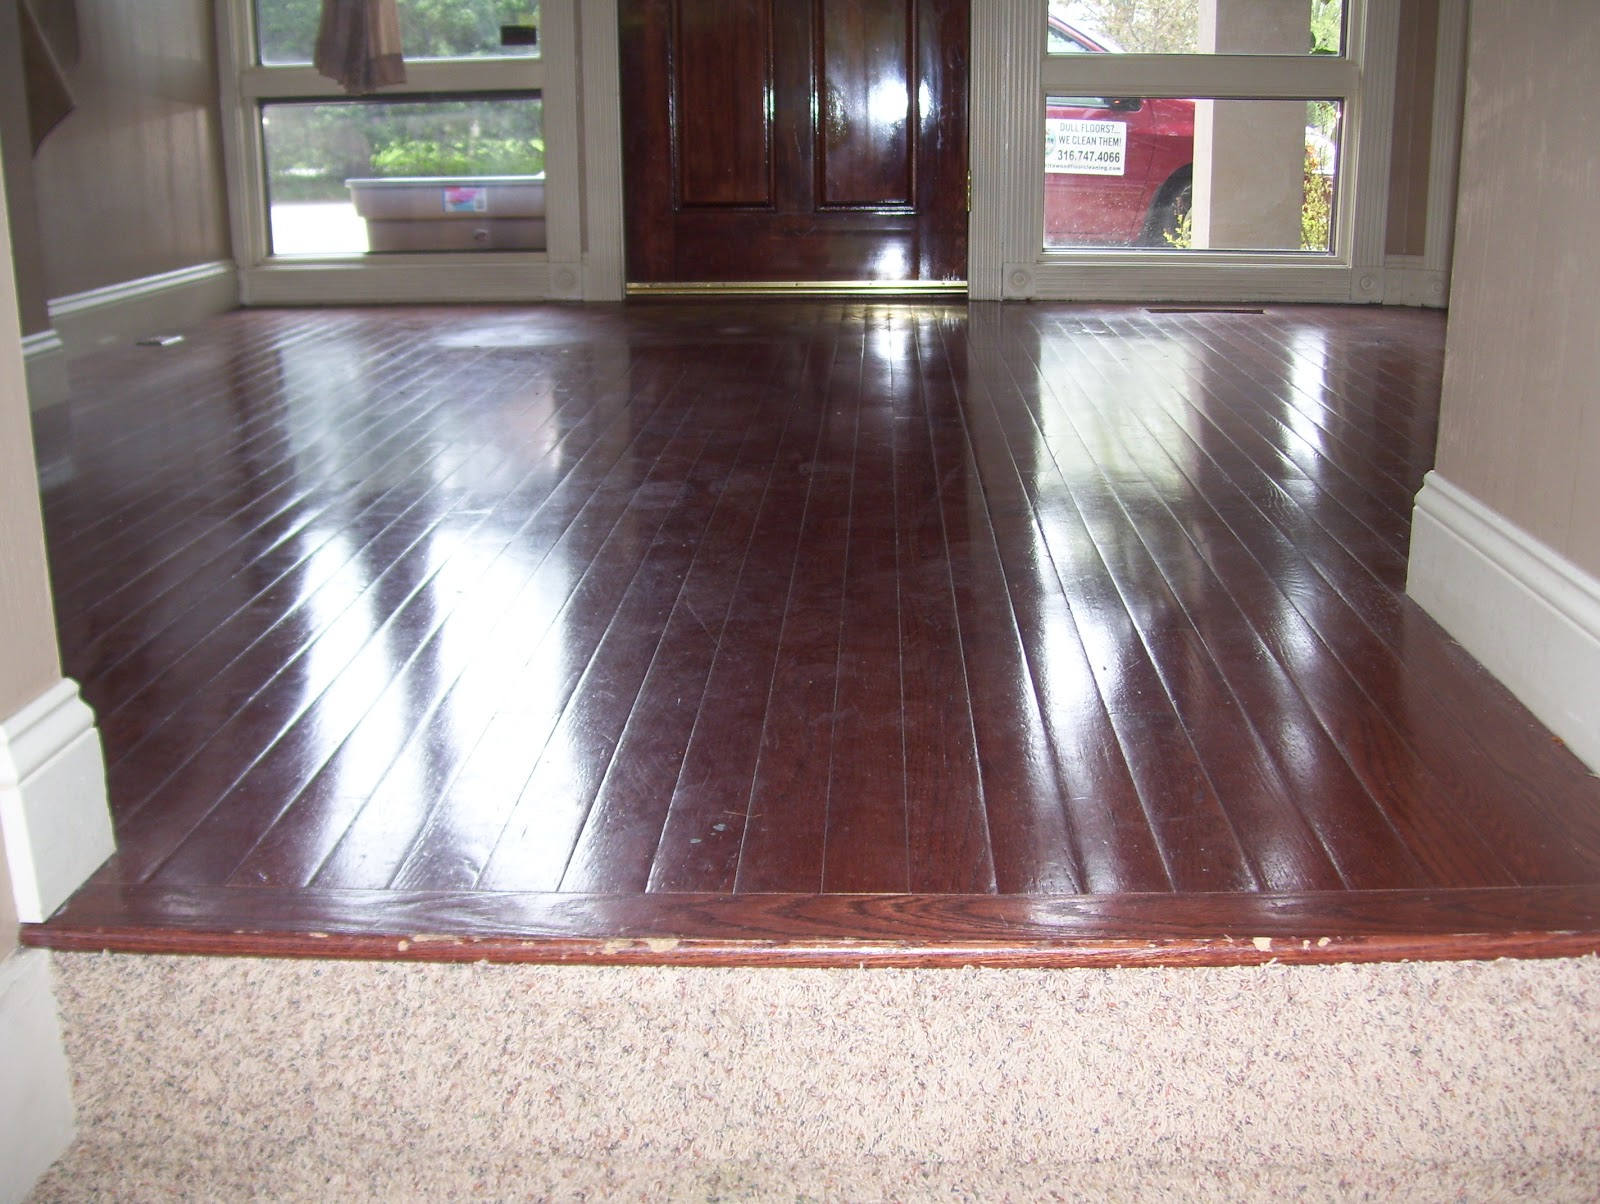 How To Get Wax Buildup Off Wood Floors How To Clean Paste